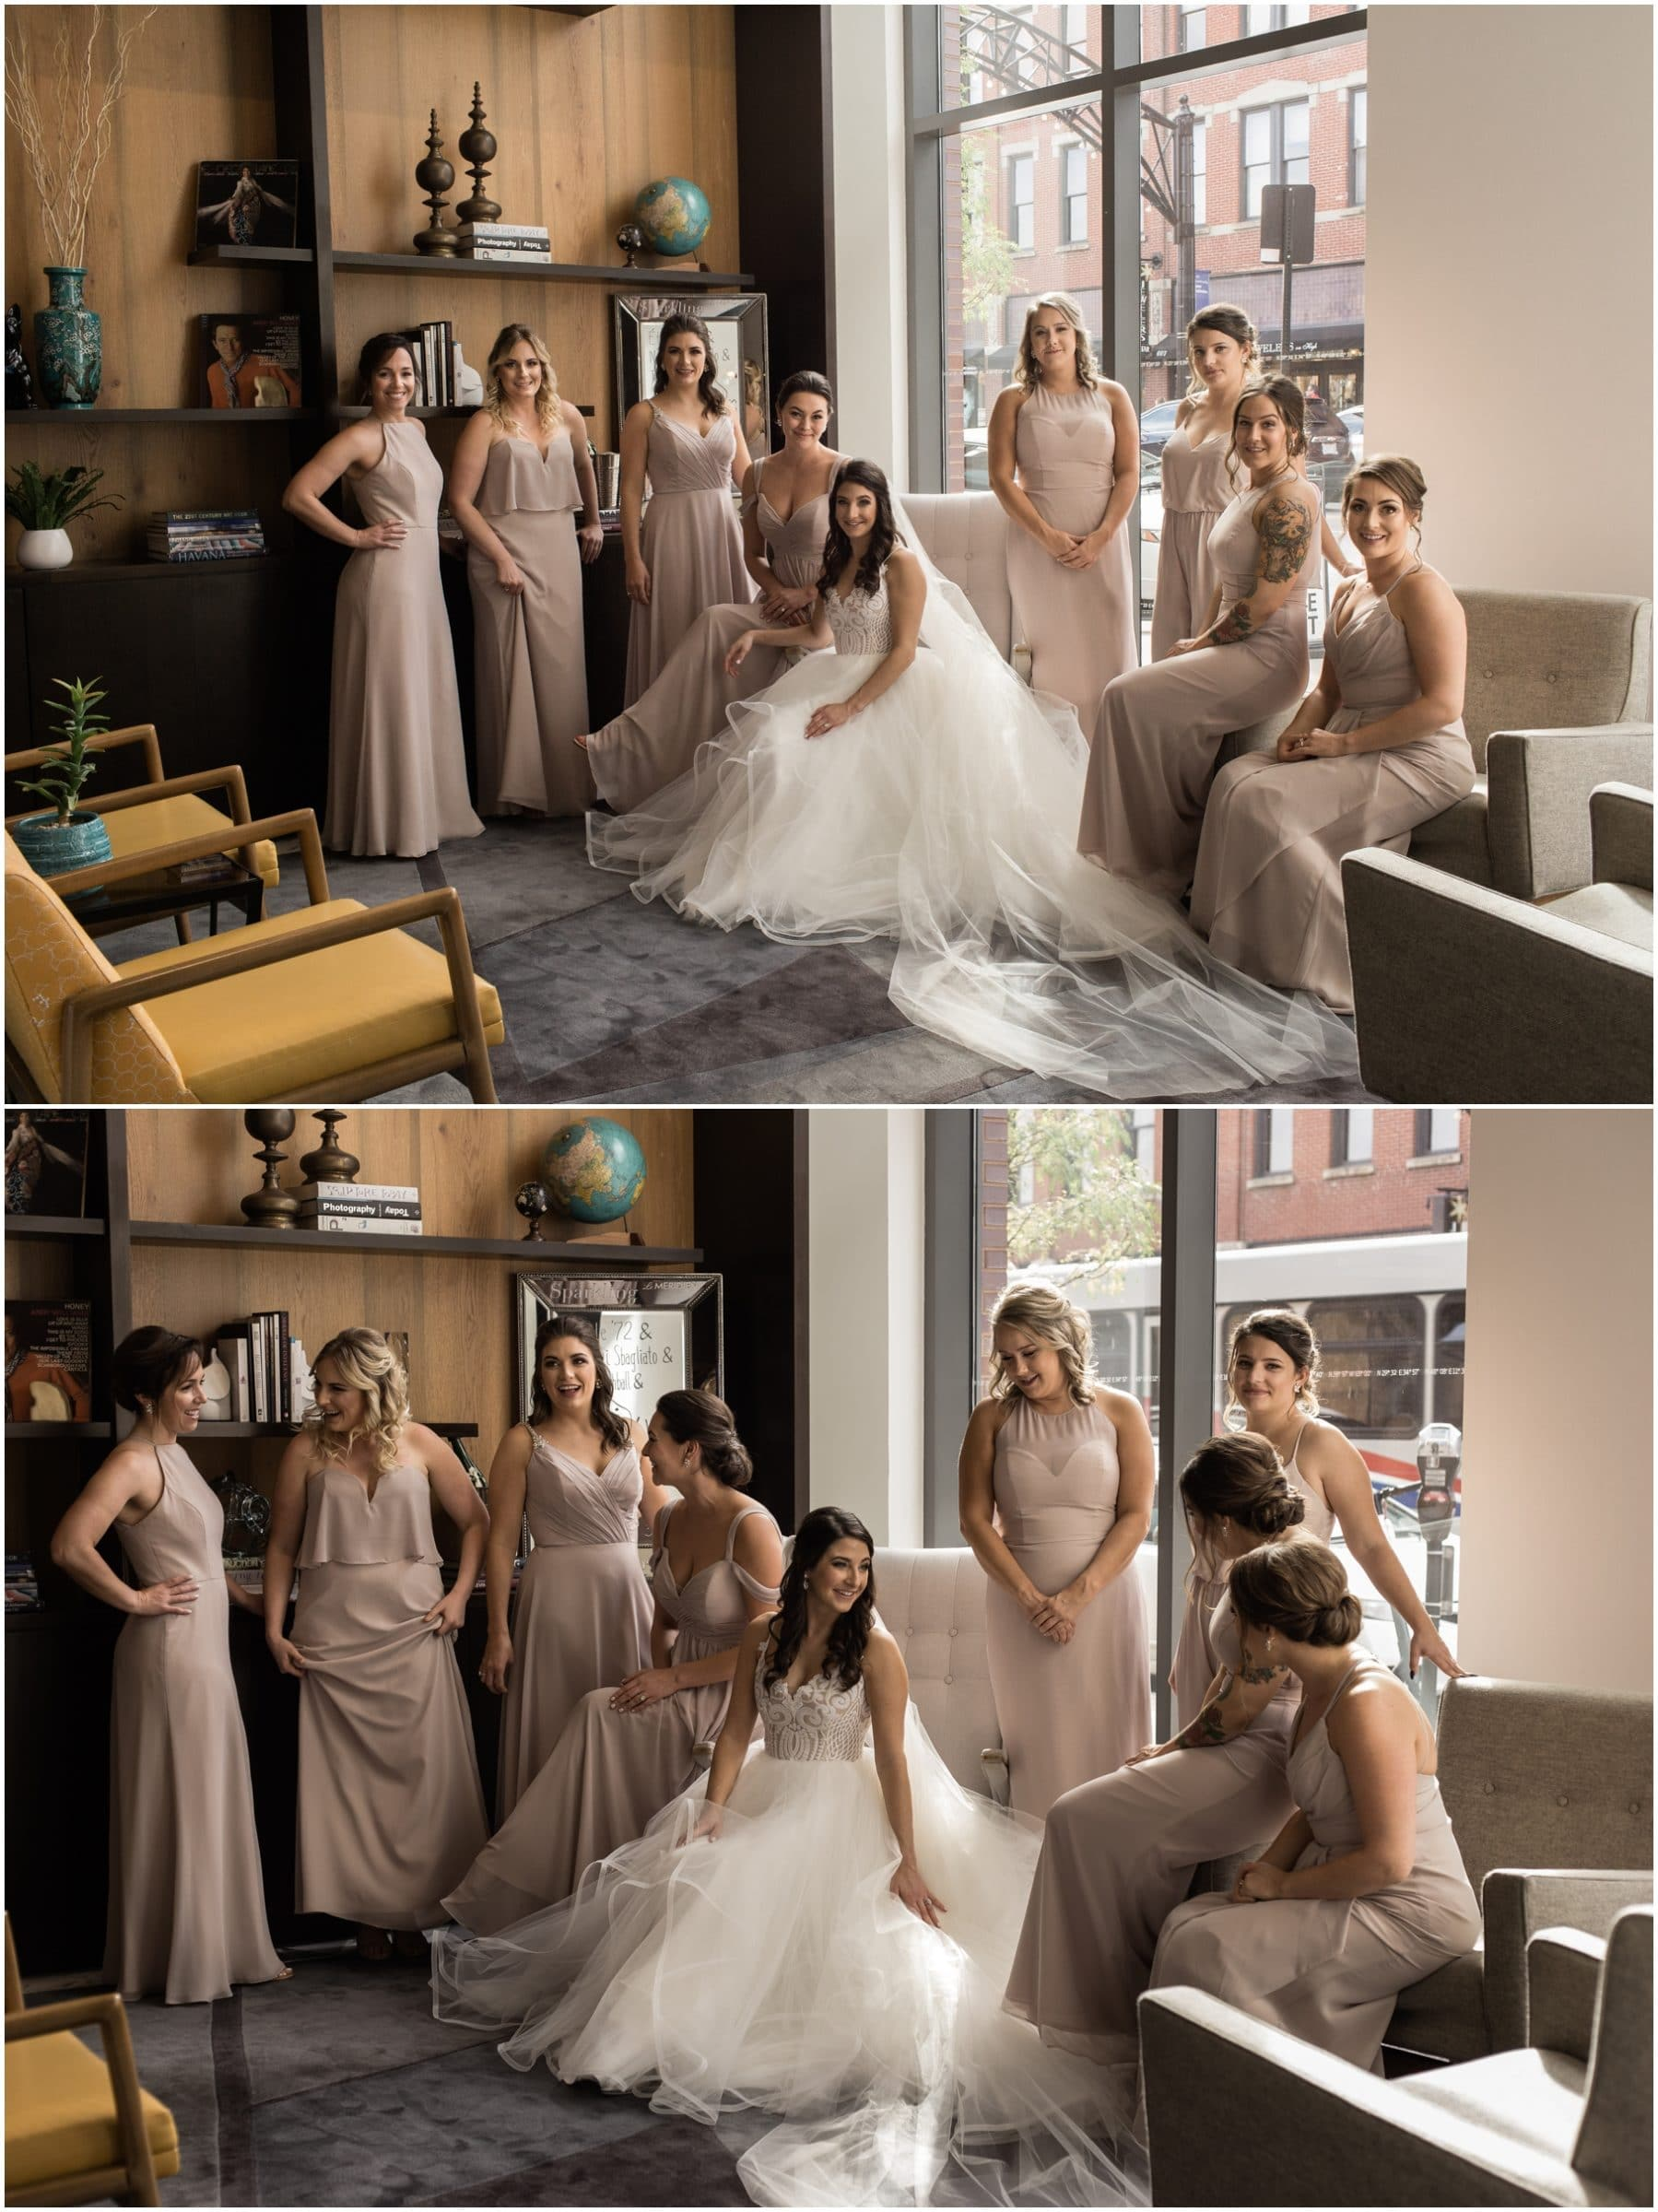 adam lowe photography , wedding, style, fashionable, columbus, ohio, columbus museum of art, cma, Blush by Hayley Paige,La Jeune Mariee ,Pursuit ,Short North Piece of Cake, Pistacia Vera,The Joseph hotel, Diamond Cellar, Wedlocks by Krislee, Josh Stayley Productions ,